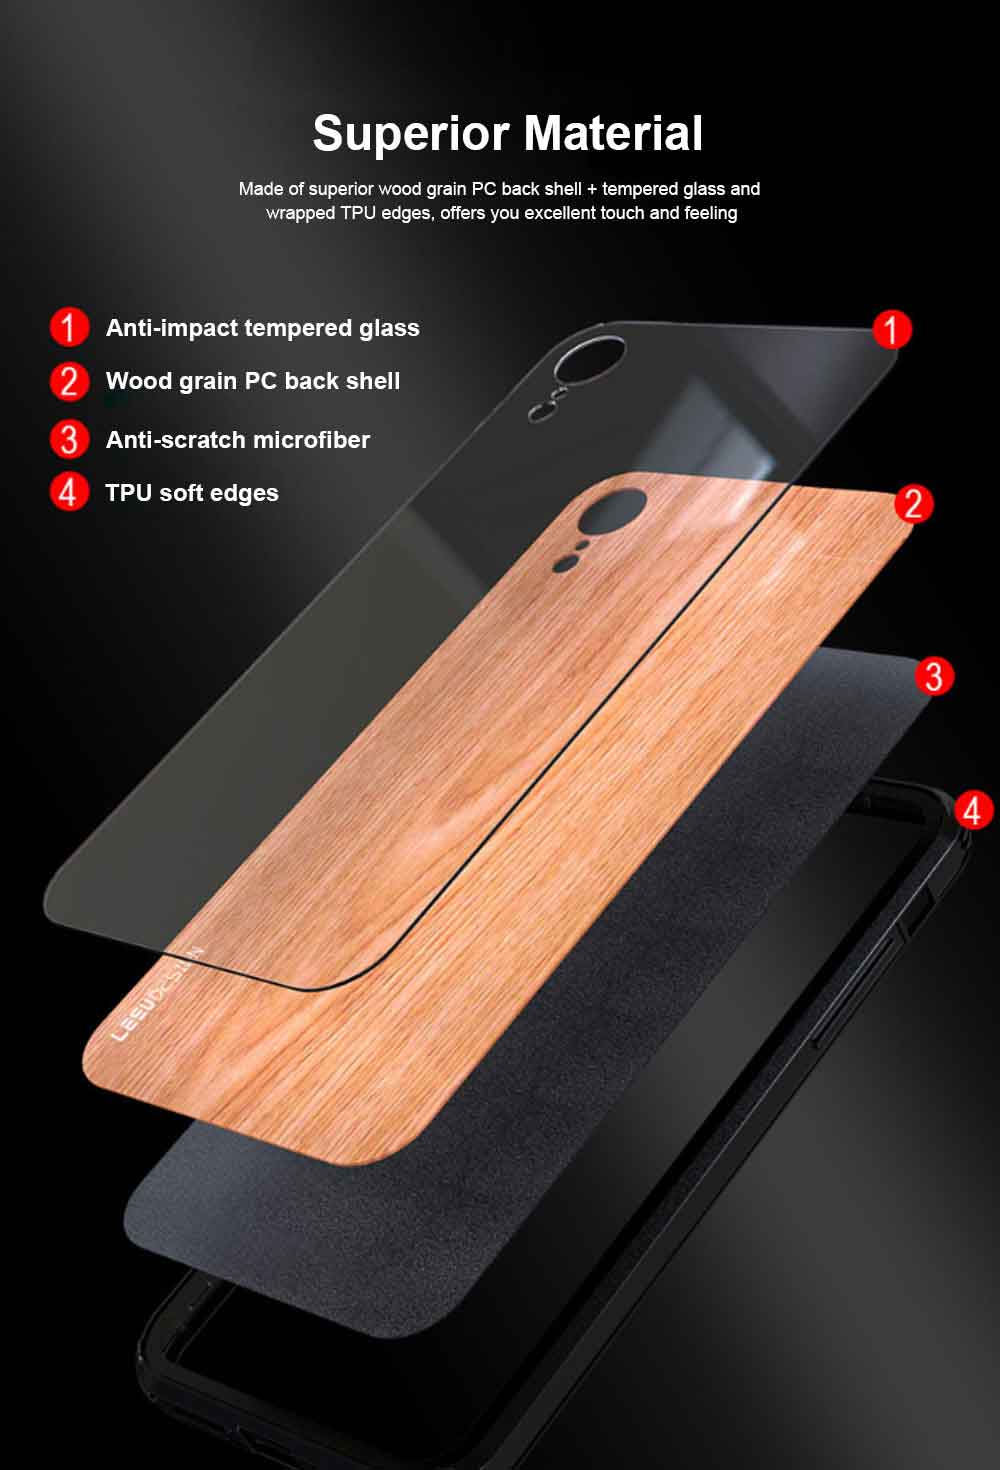 Wood Grain with Tempered Glass Phone Case Compatible for iPhone X/XS/MAX/7/8/7P/8P, Anti-impact Tempered Glass Phone Case Wood Grain Protective Phone Cover 1